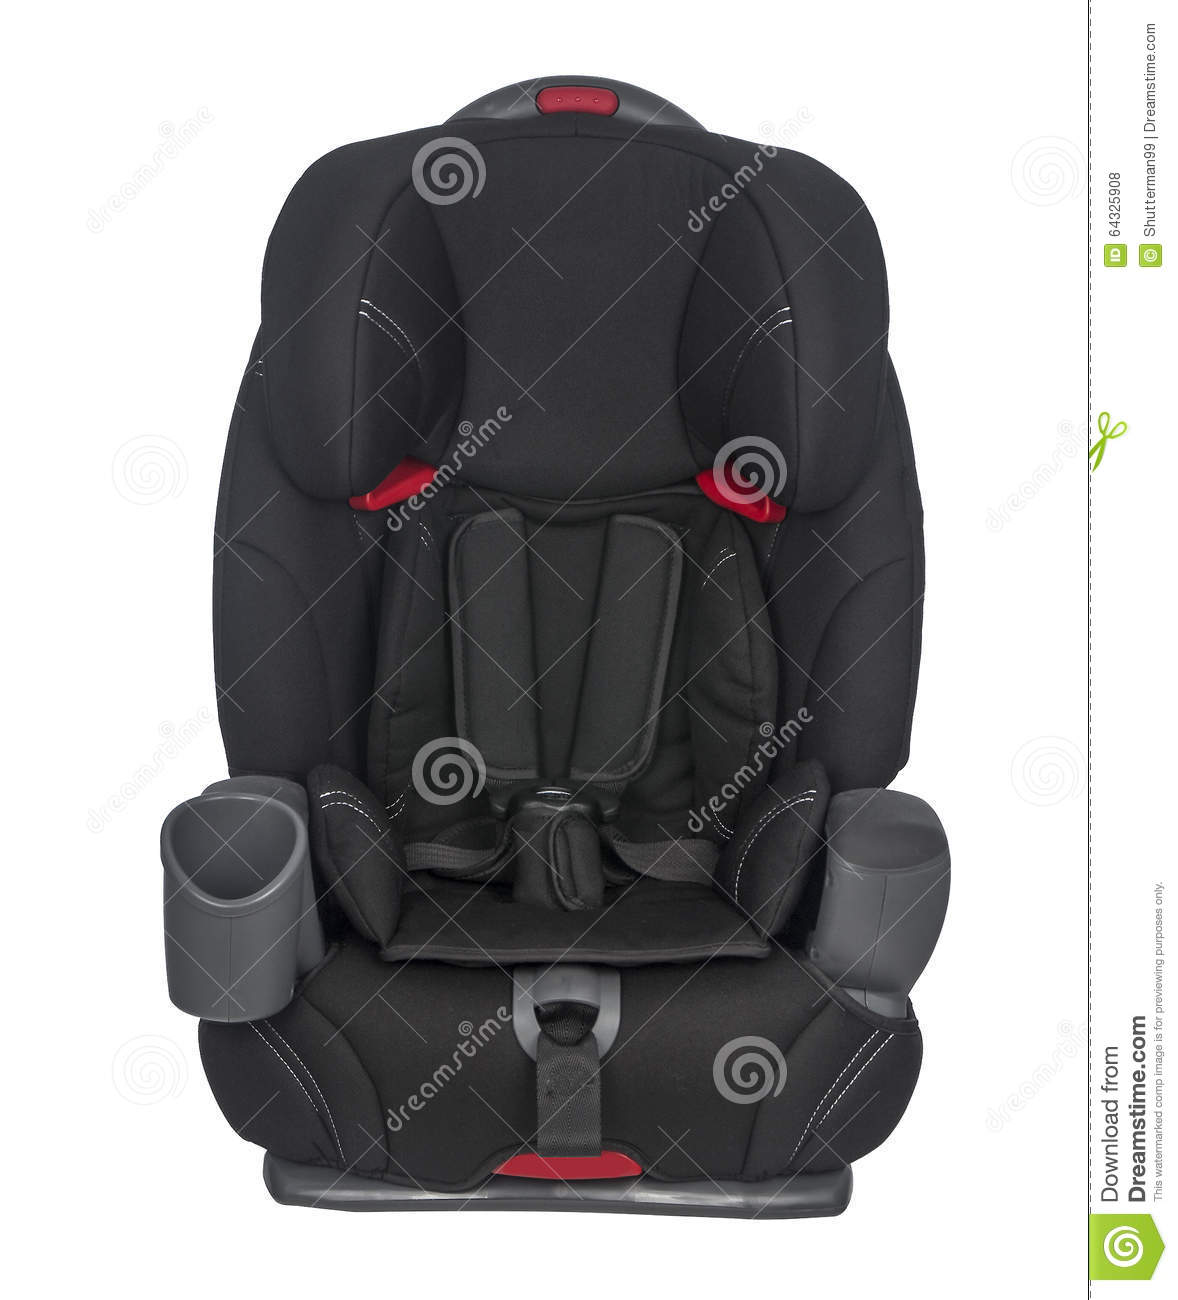 Child Car Seat On A White Background Stock Photo - Image of ...